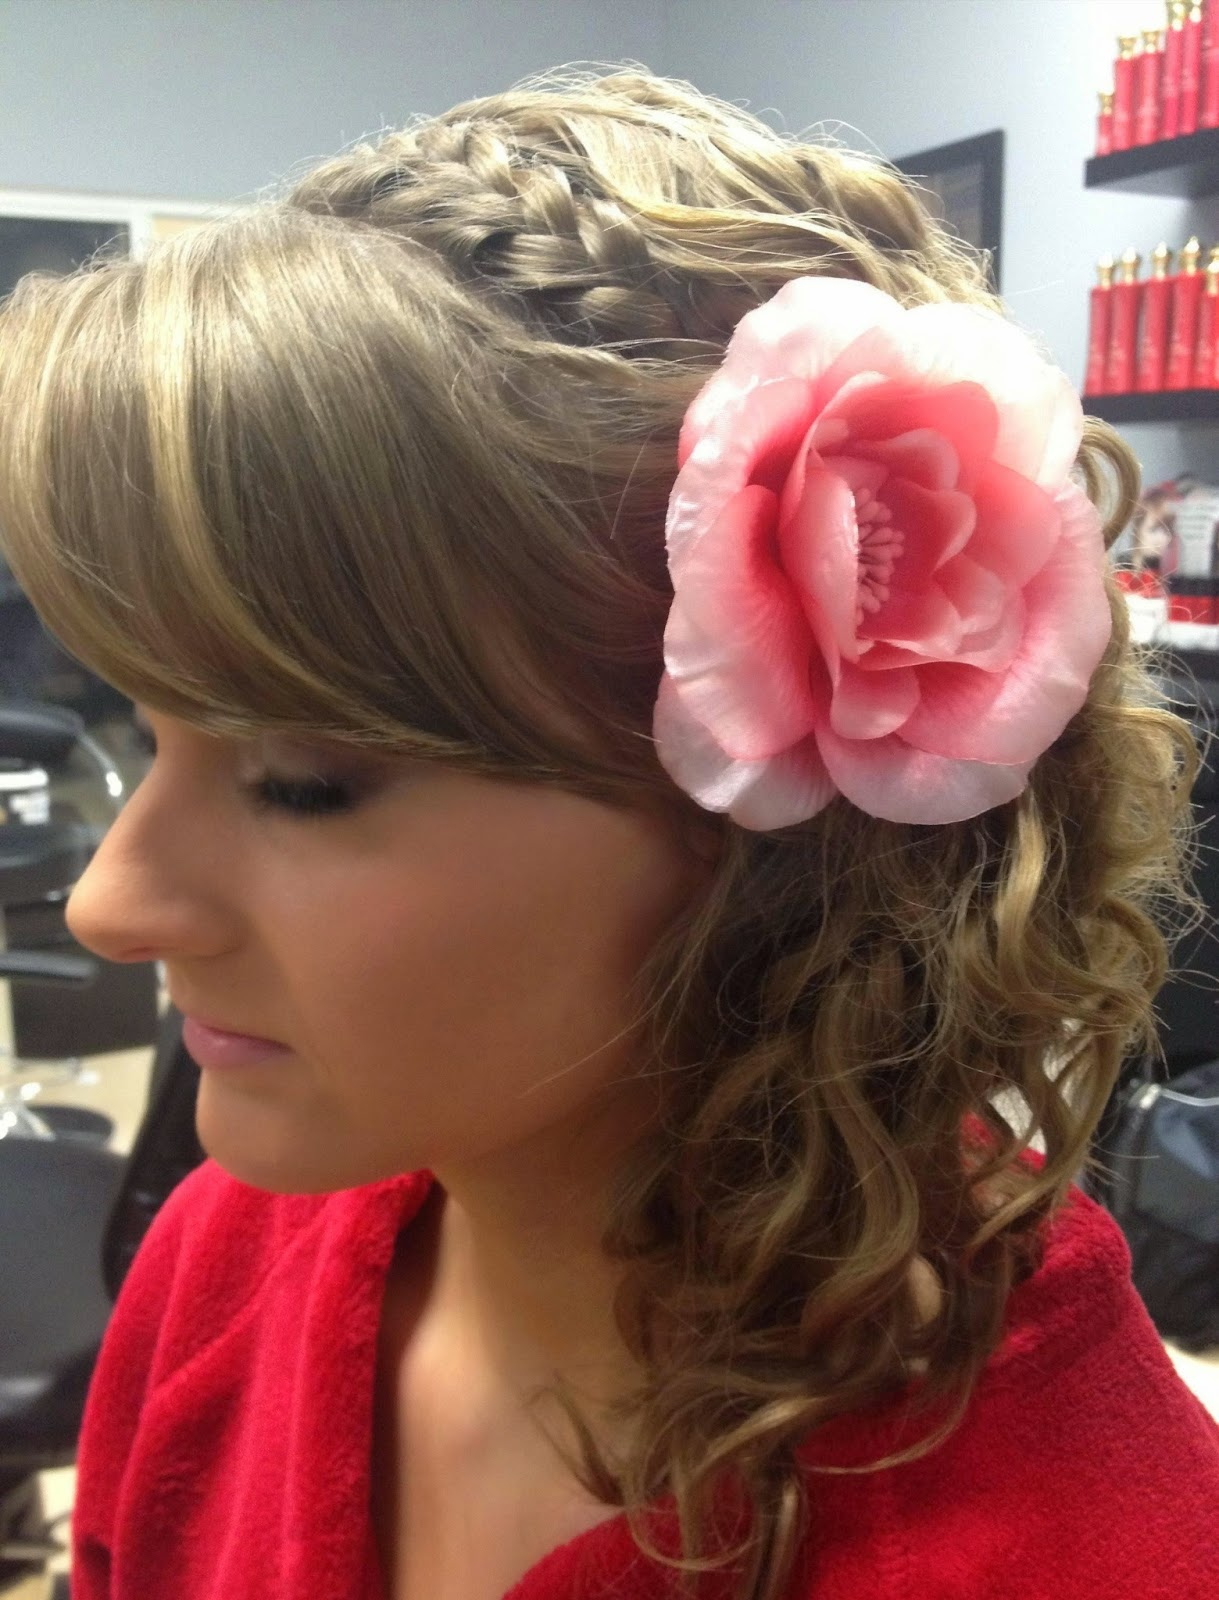 8 Stunning Prom Updos For Long Hair - Hair Fashion Online